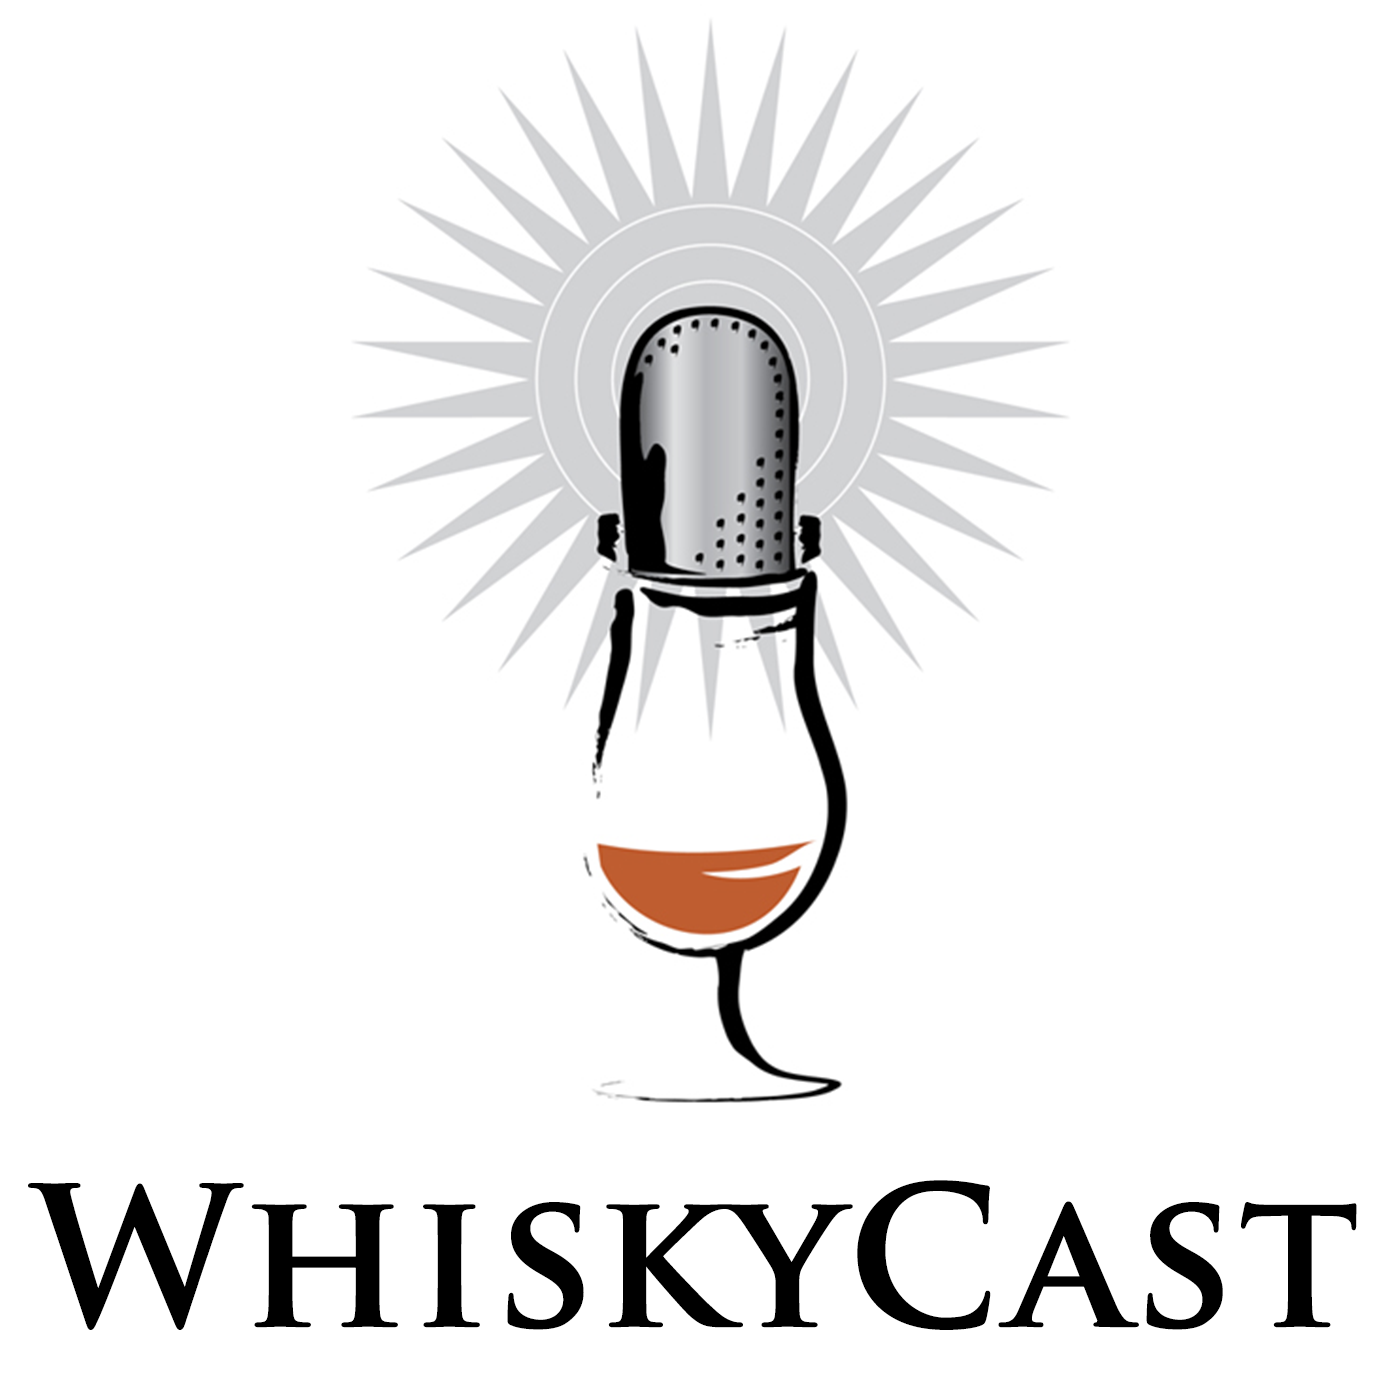 WhiskyCast Episode 439: August 25, 2013